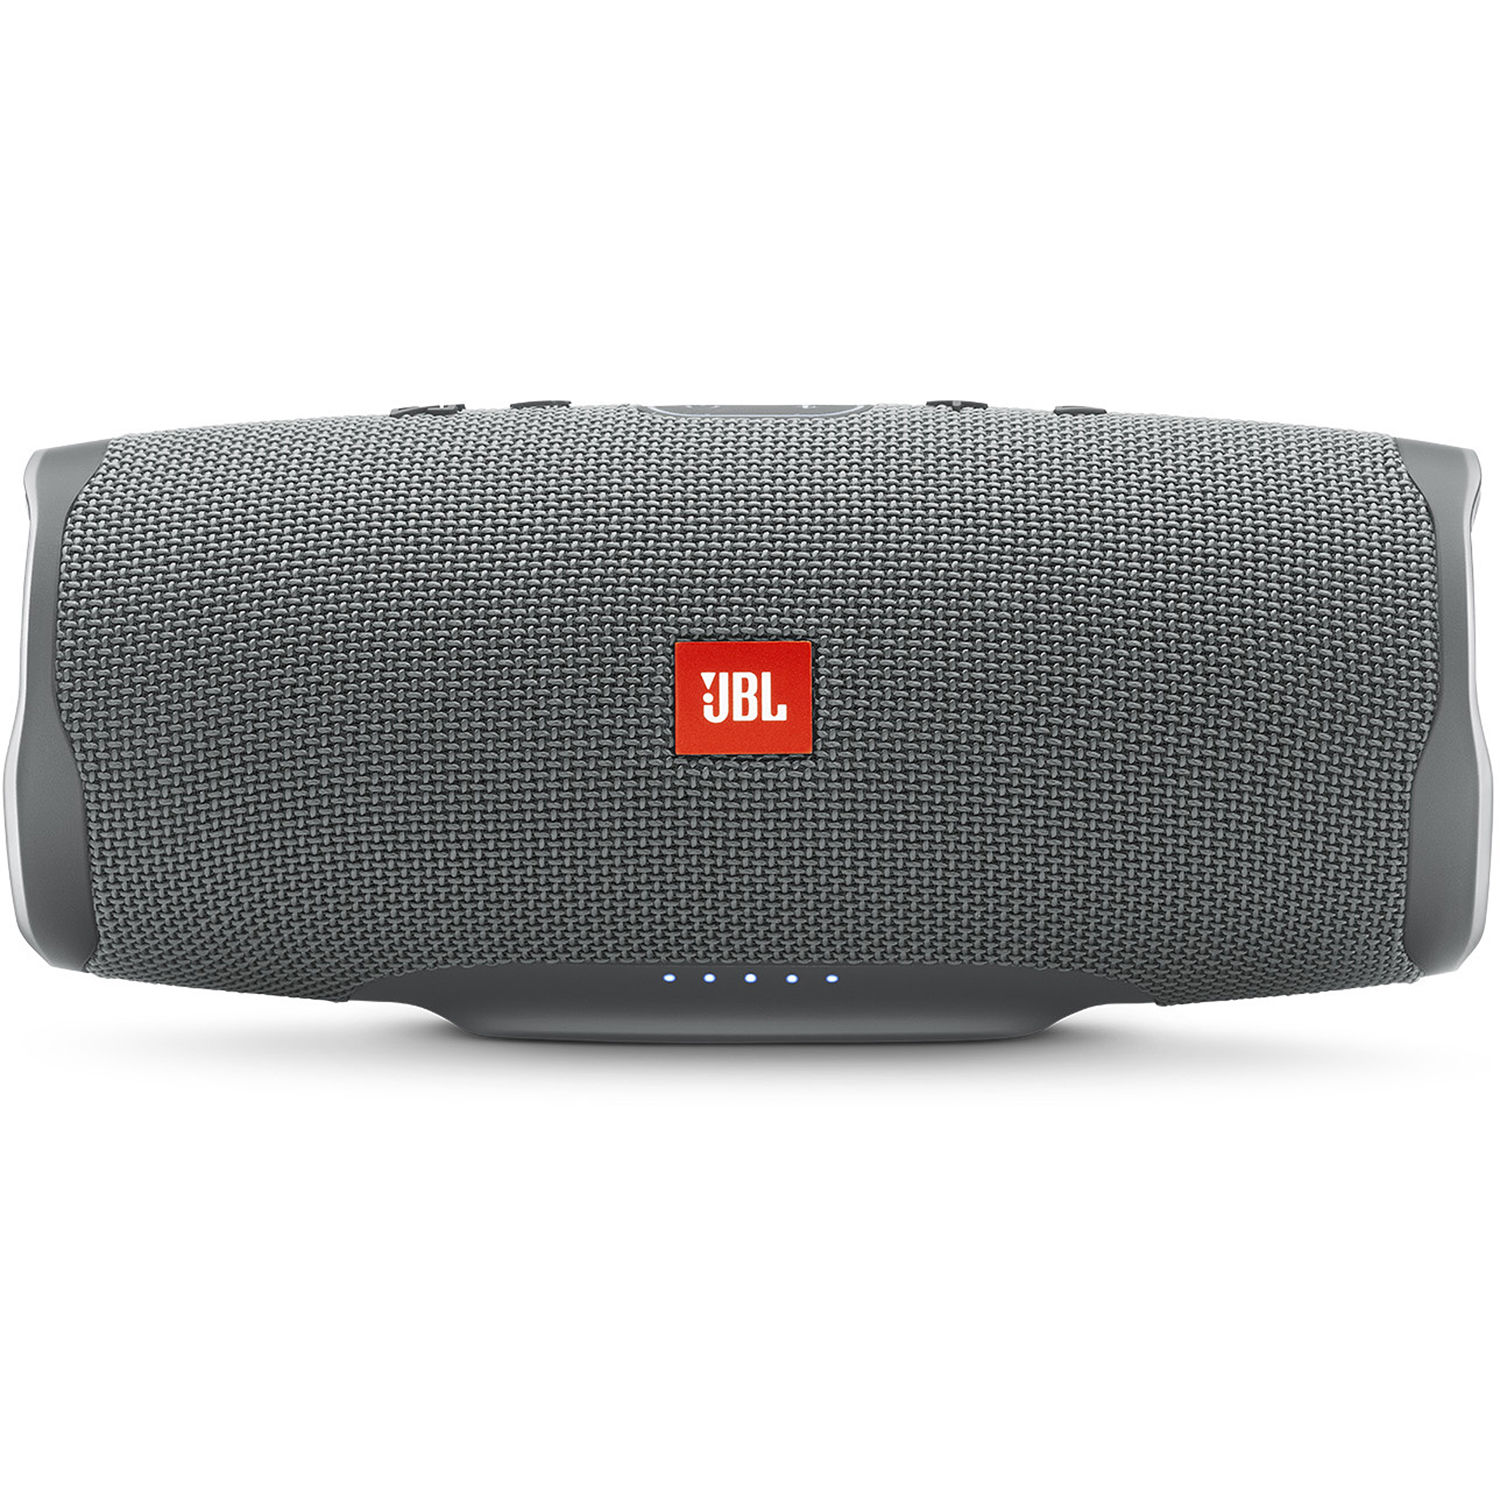 Jbl Charge 4 Portable Bluetooth Speaker Gray Jblcharge4gryam